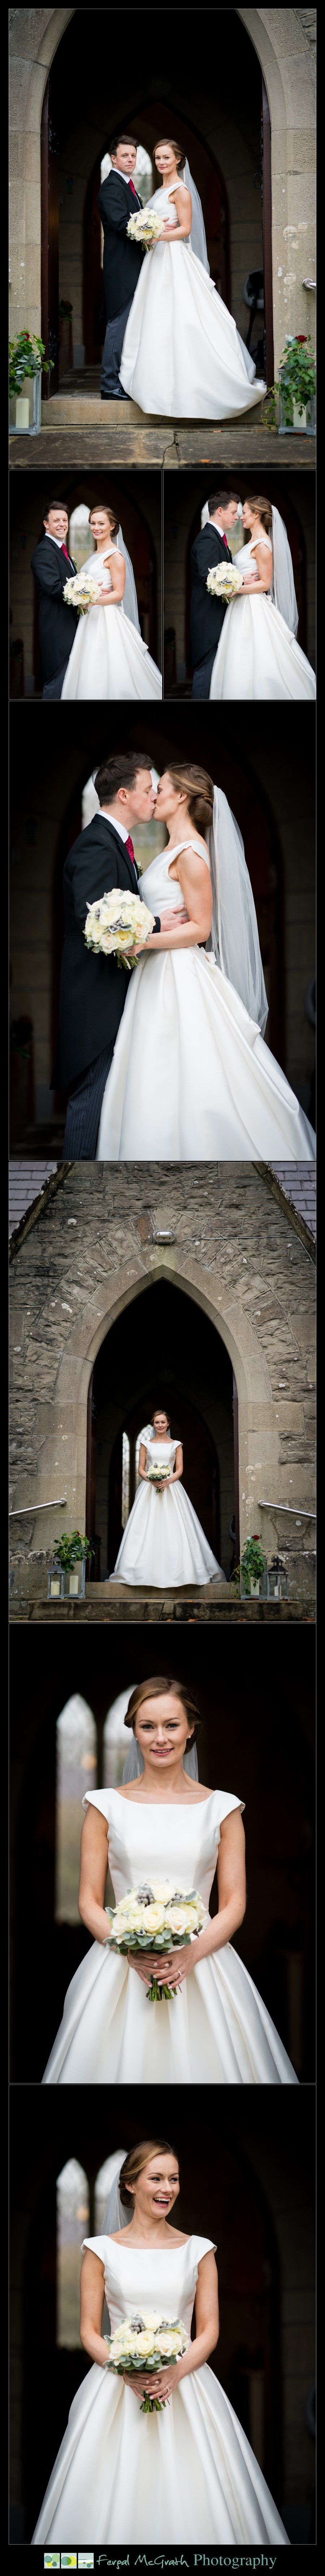 Harveys Point Hotel Winter Weddings stunning bride and groom photos at the church door after the wedding ceremony